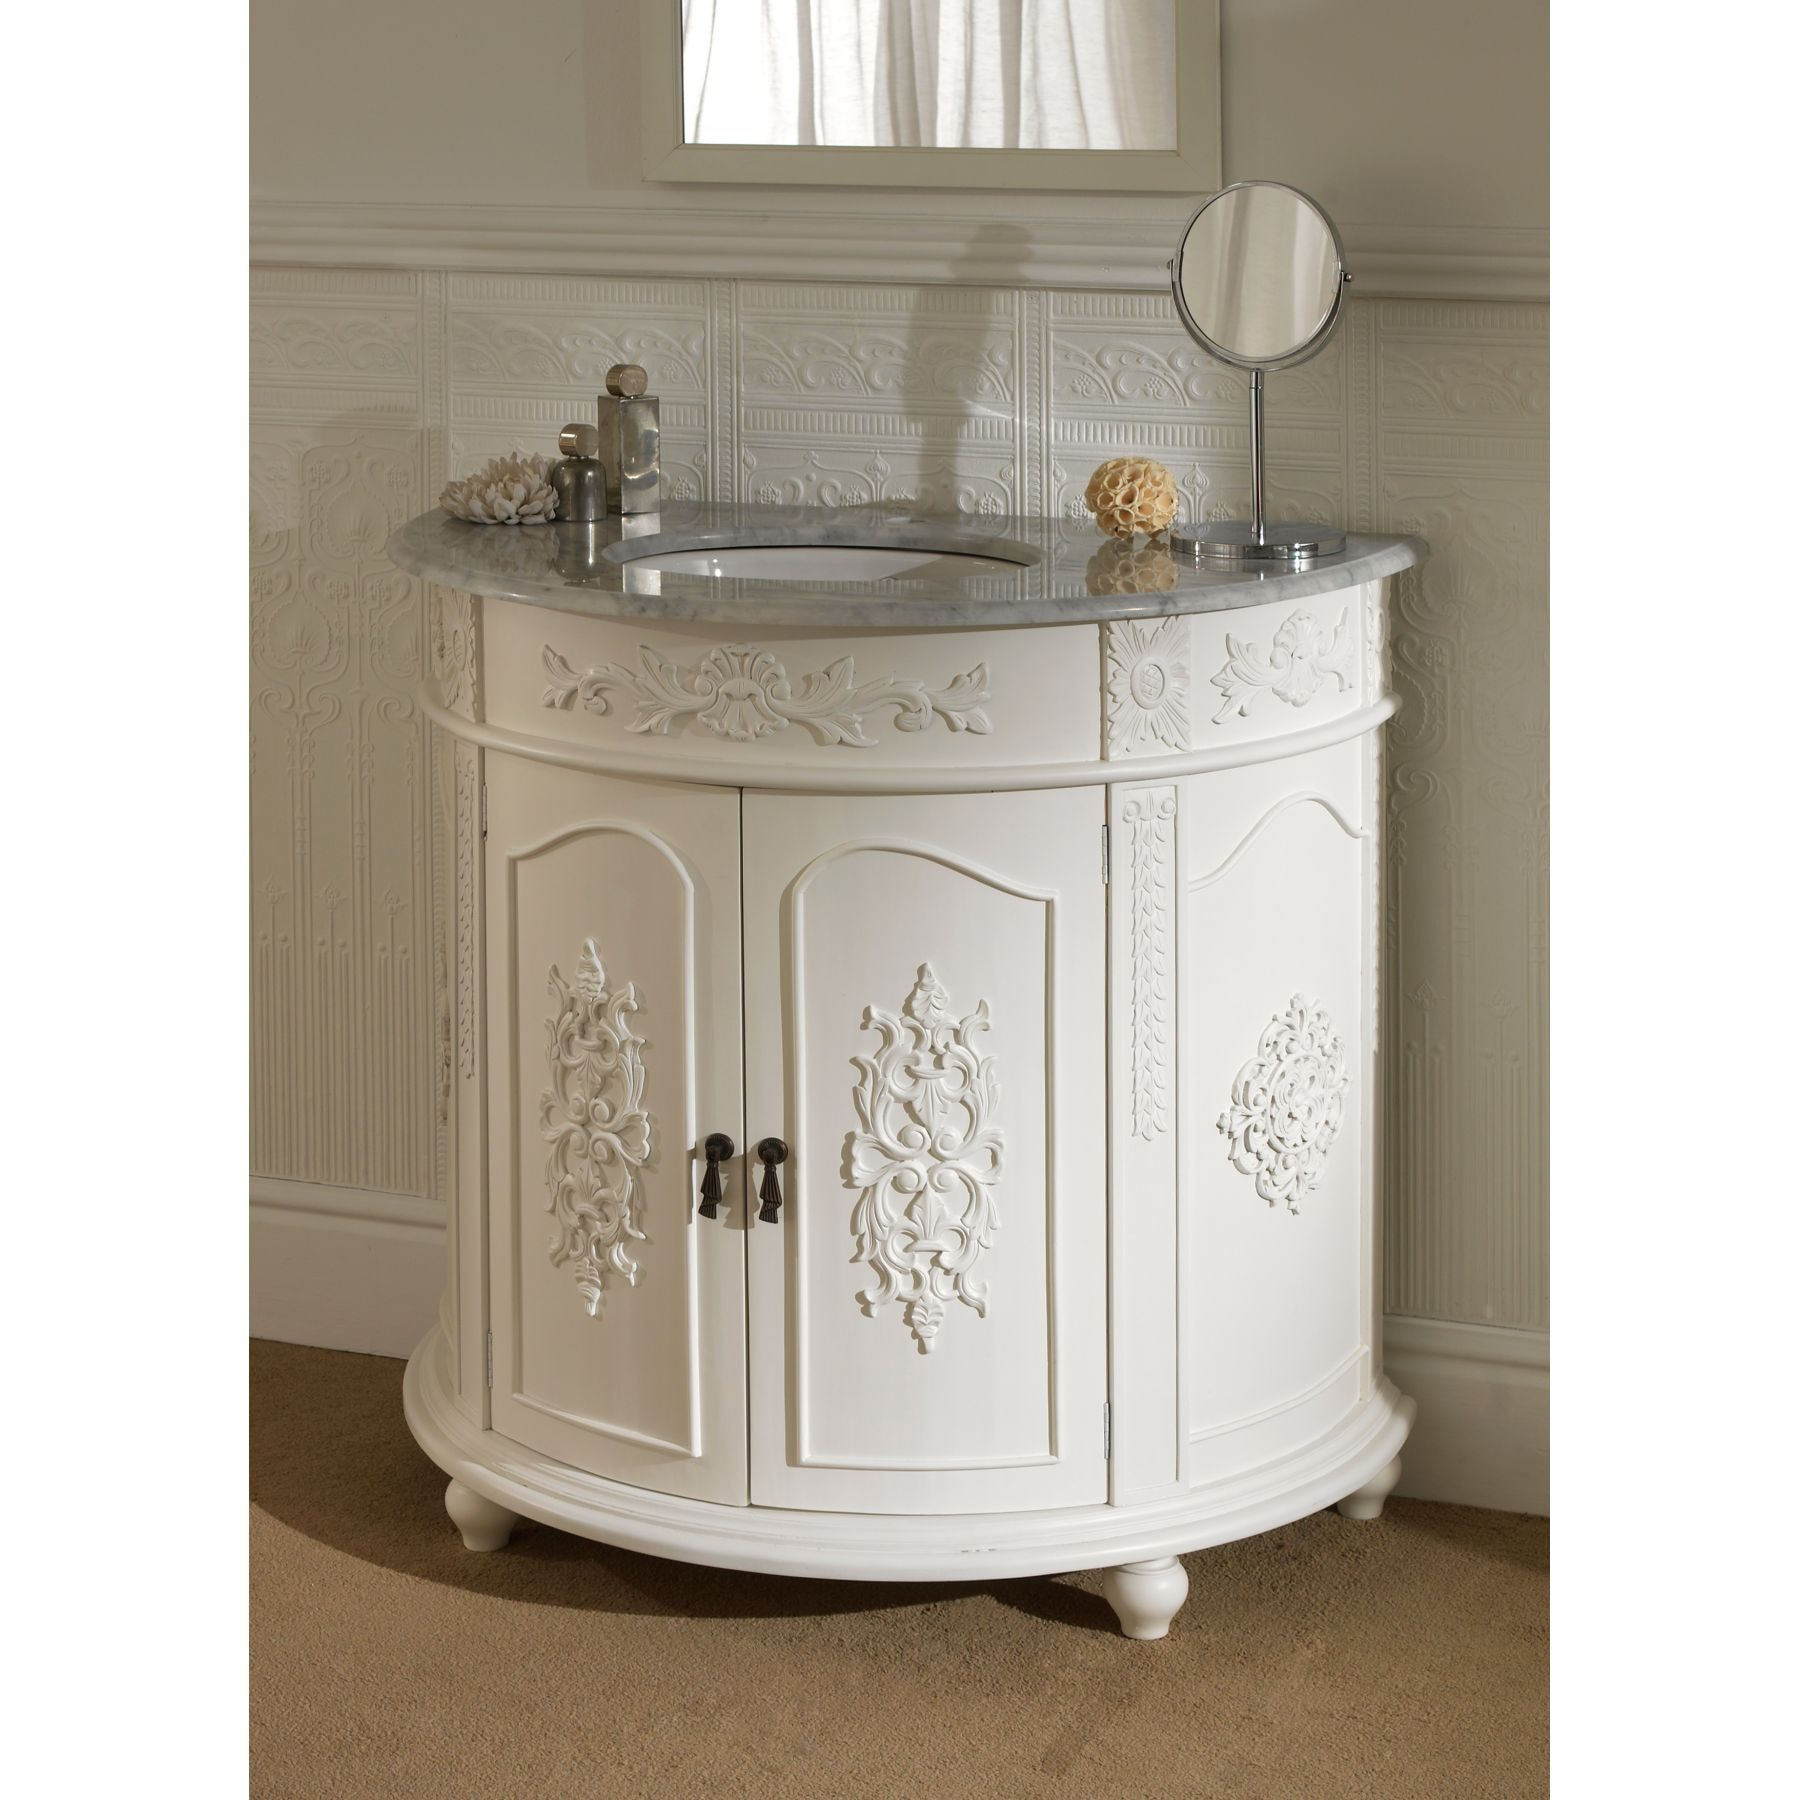 Semi circular antique french vanity unit for Vanity sink units bathroom sale